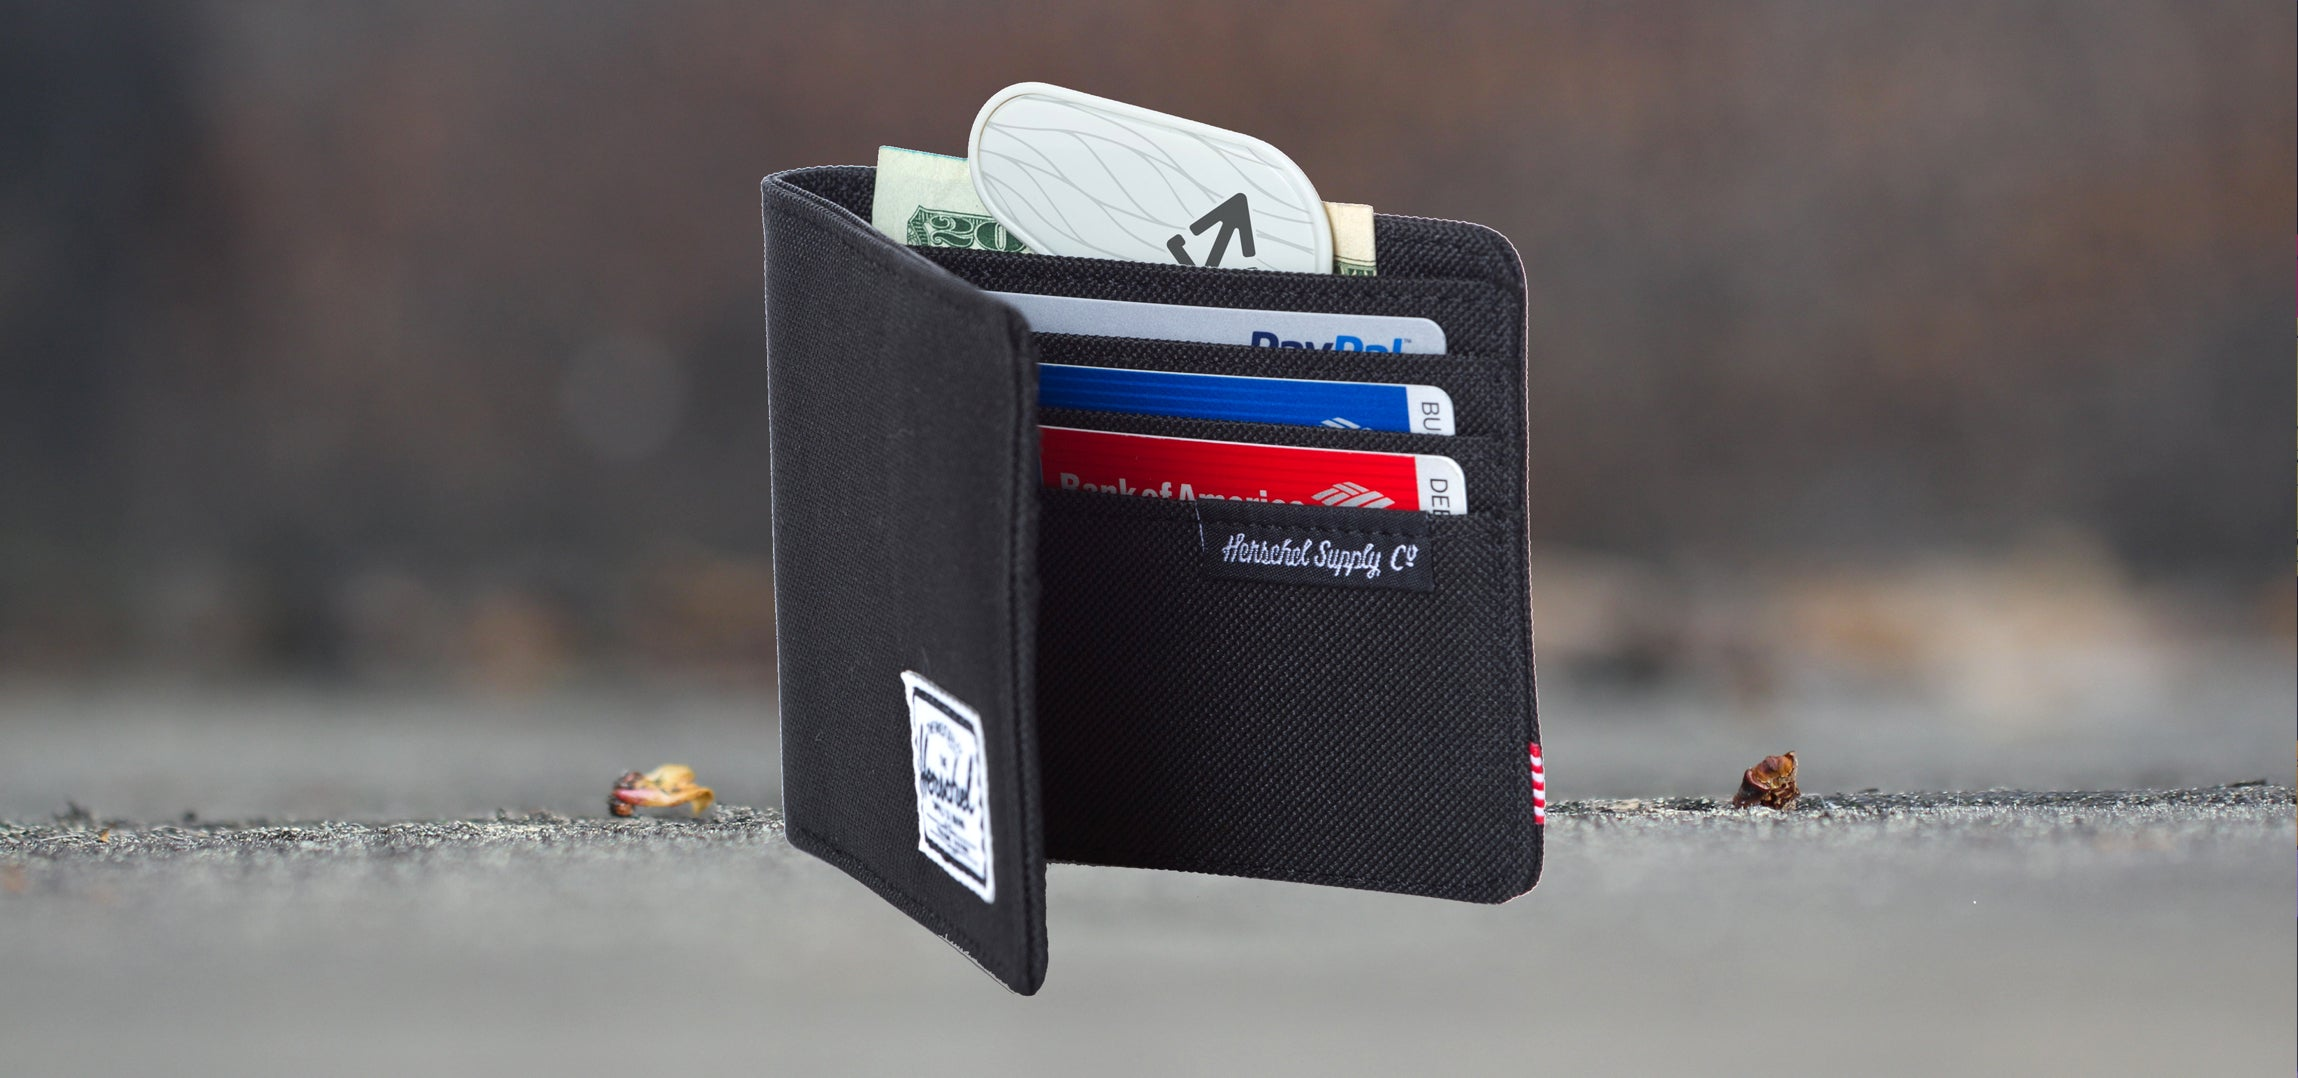 Worthwhile wallets